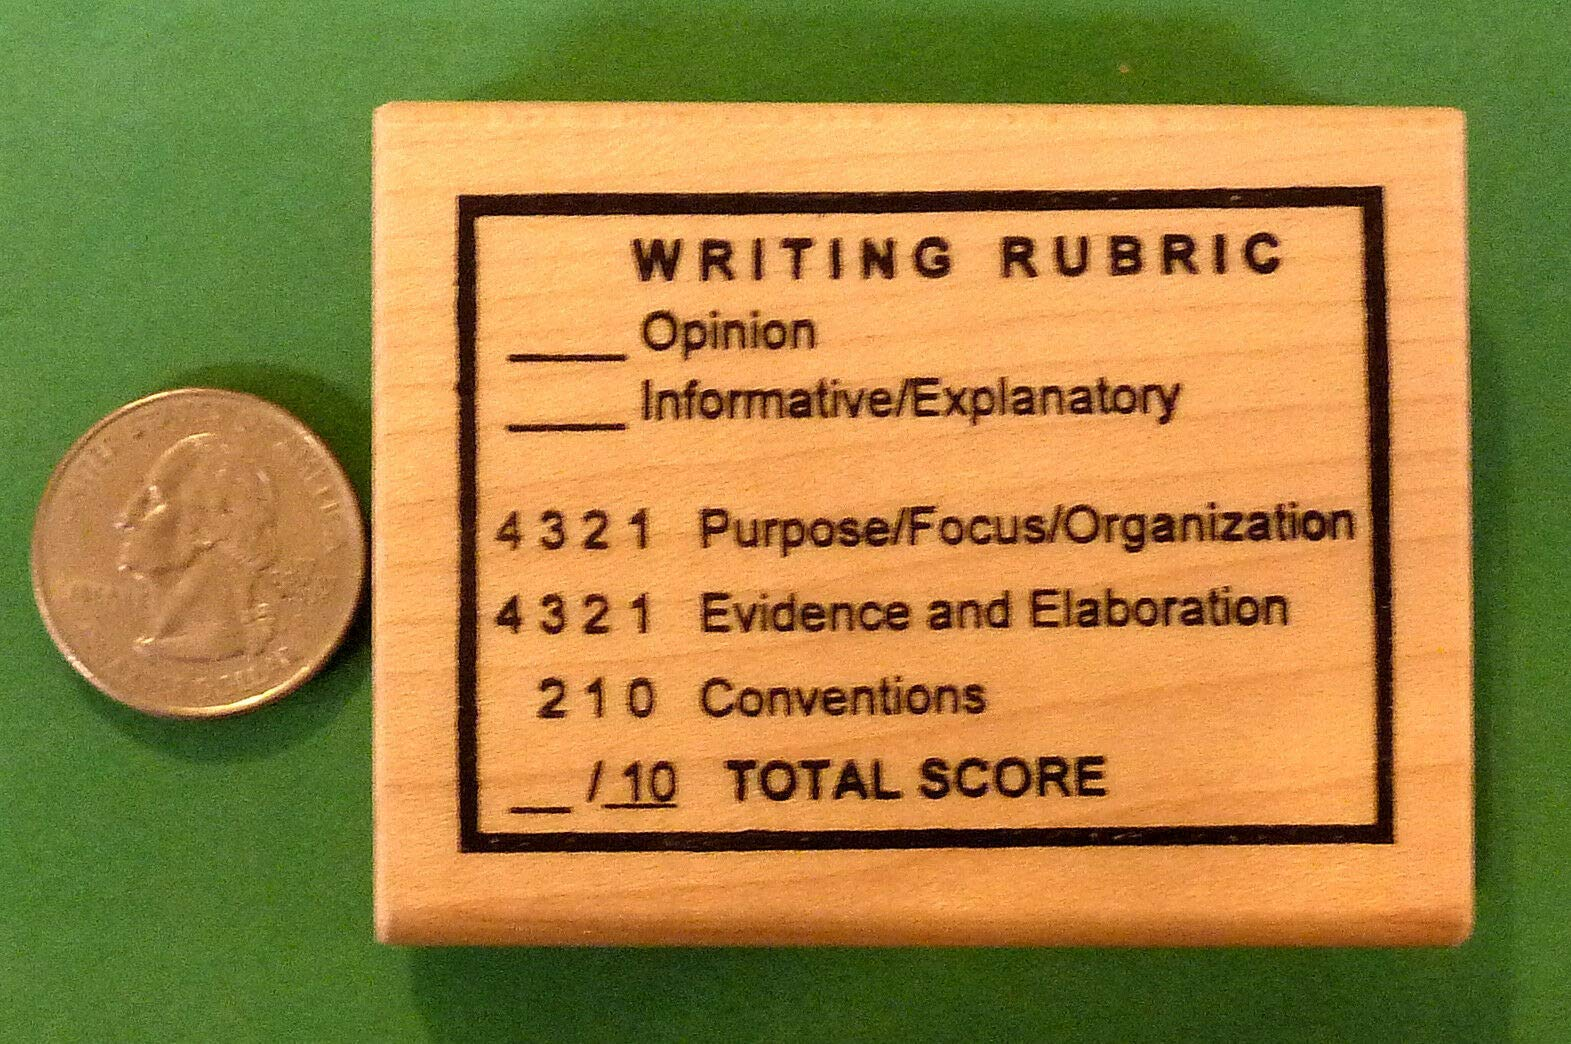 Quality Custom Rubber Stamps Writing Rubric, Teacher's Wood Mounted Rubber Stamp Carved Wooden Stamps